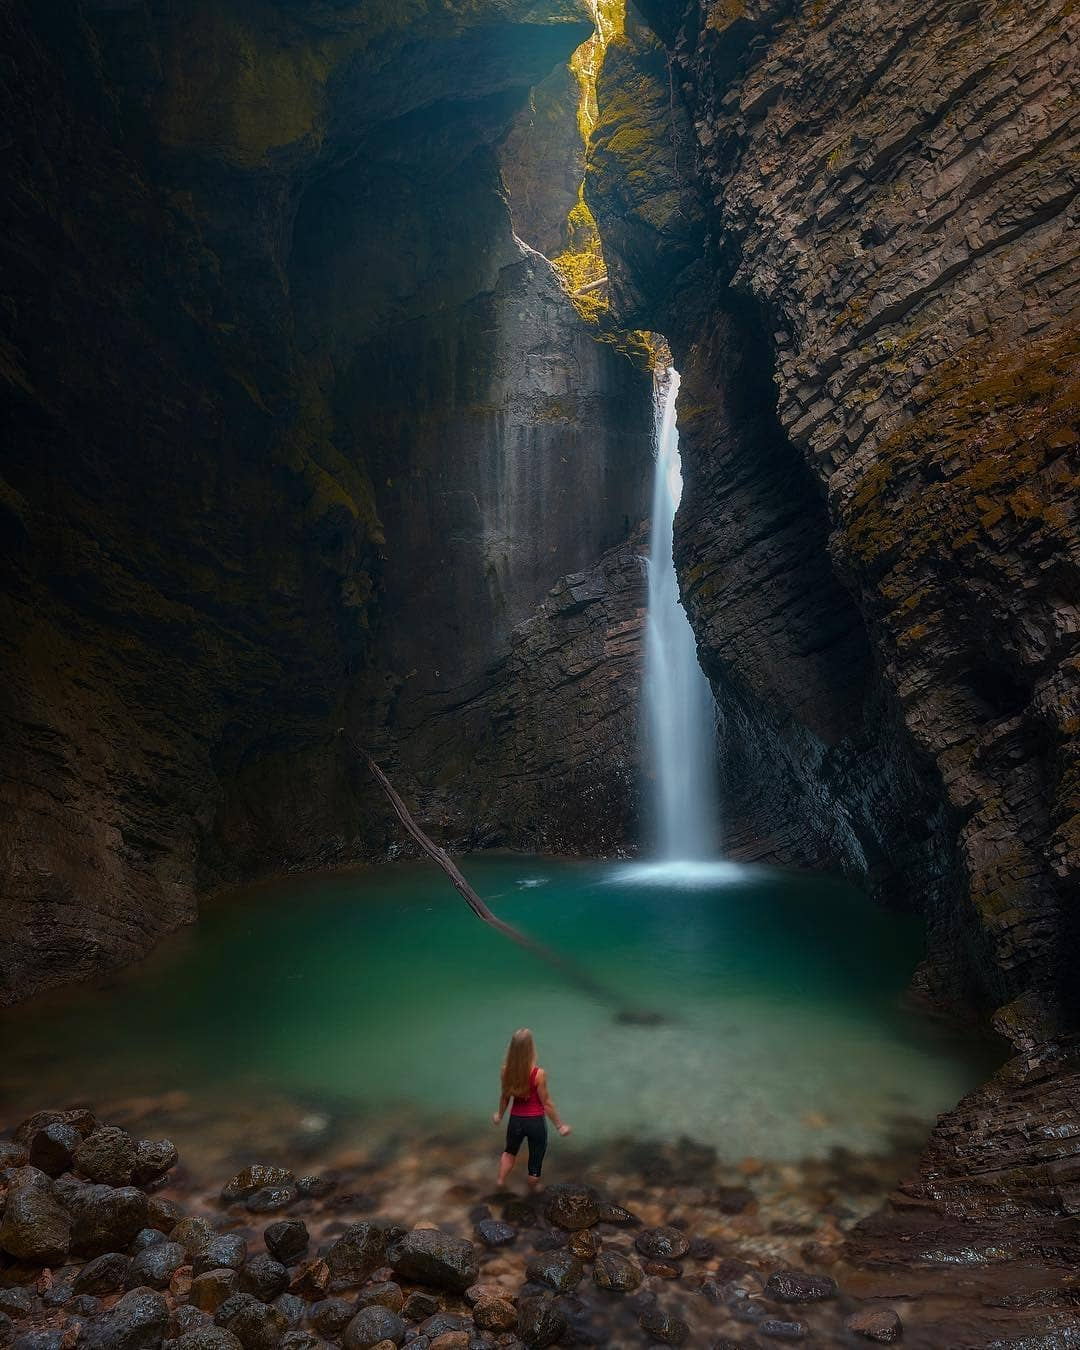 Kozjak Waterfall is a truly amazing and refreshing place for summer days.  What's your favourite spot when it gets really hot outside?️ Thanks @neilbennett3 for sharing your photo with #ifeelsLOVEnia.